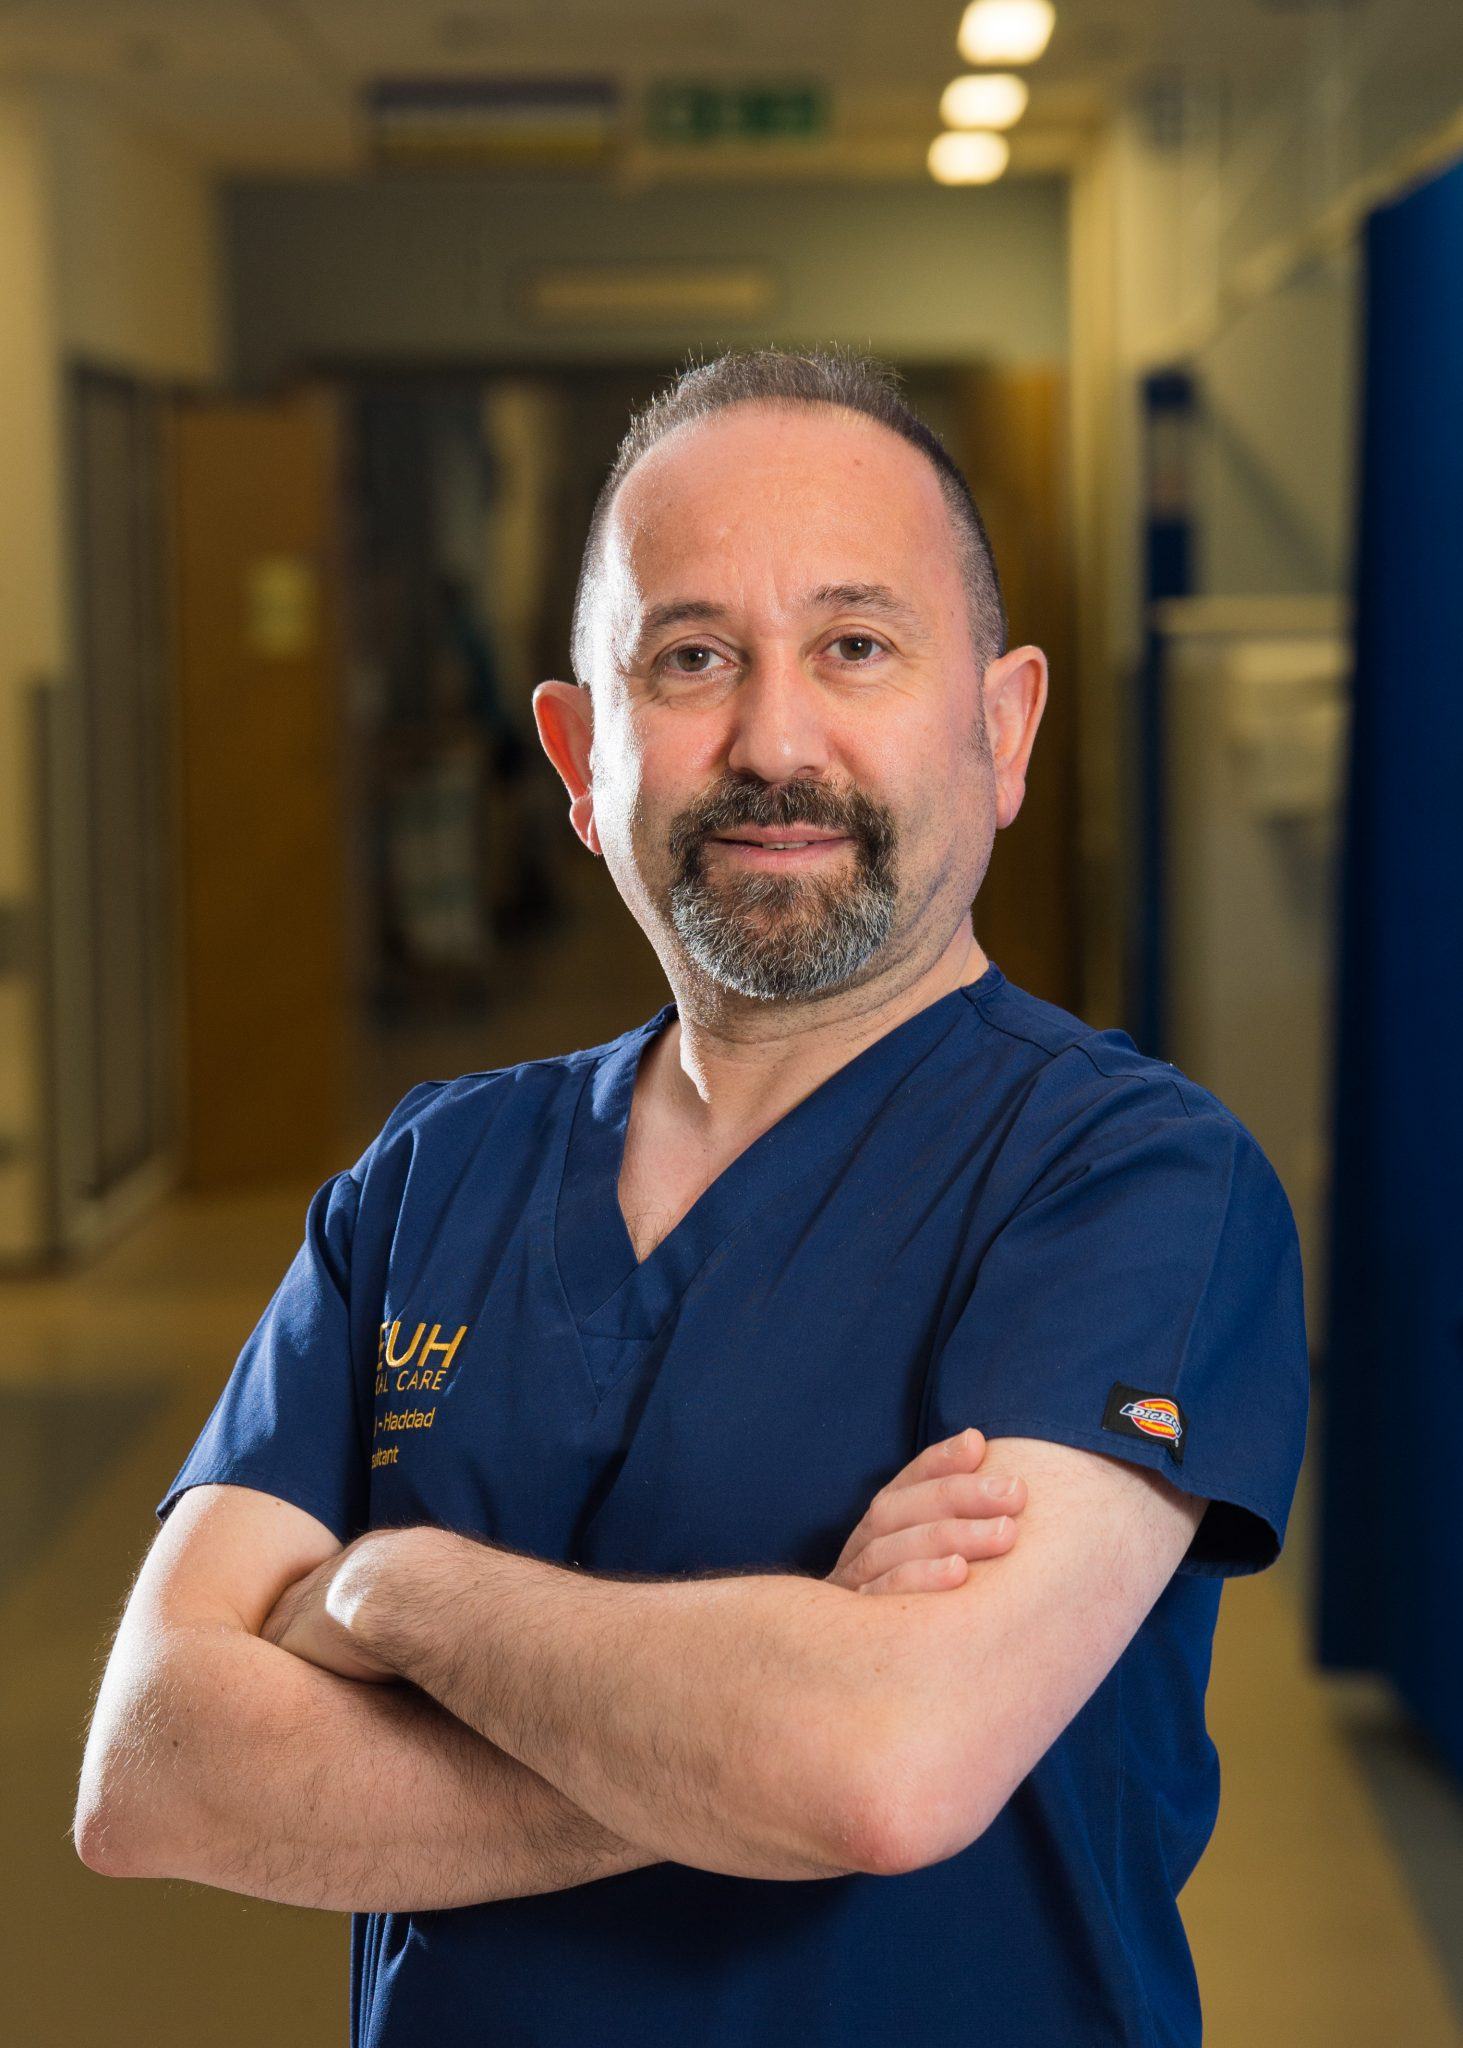 Joint initiative for international medical graduates in Scotland